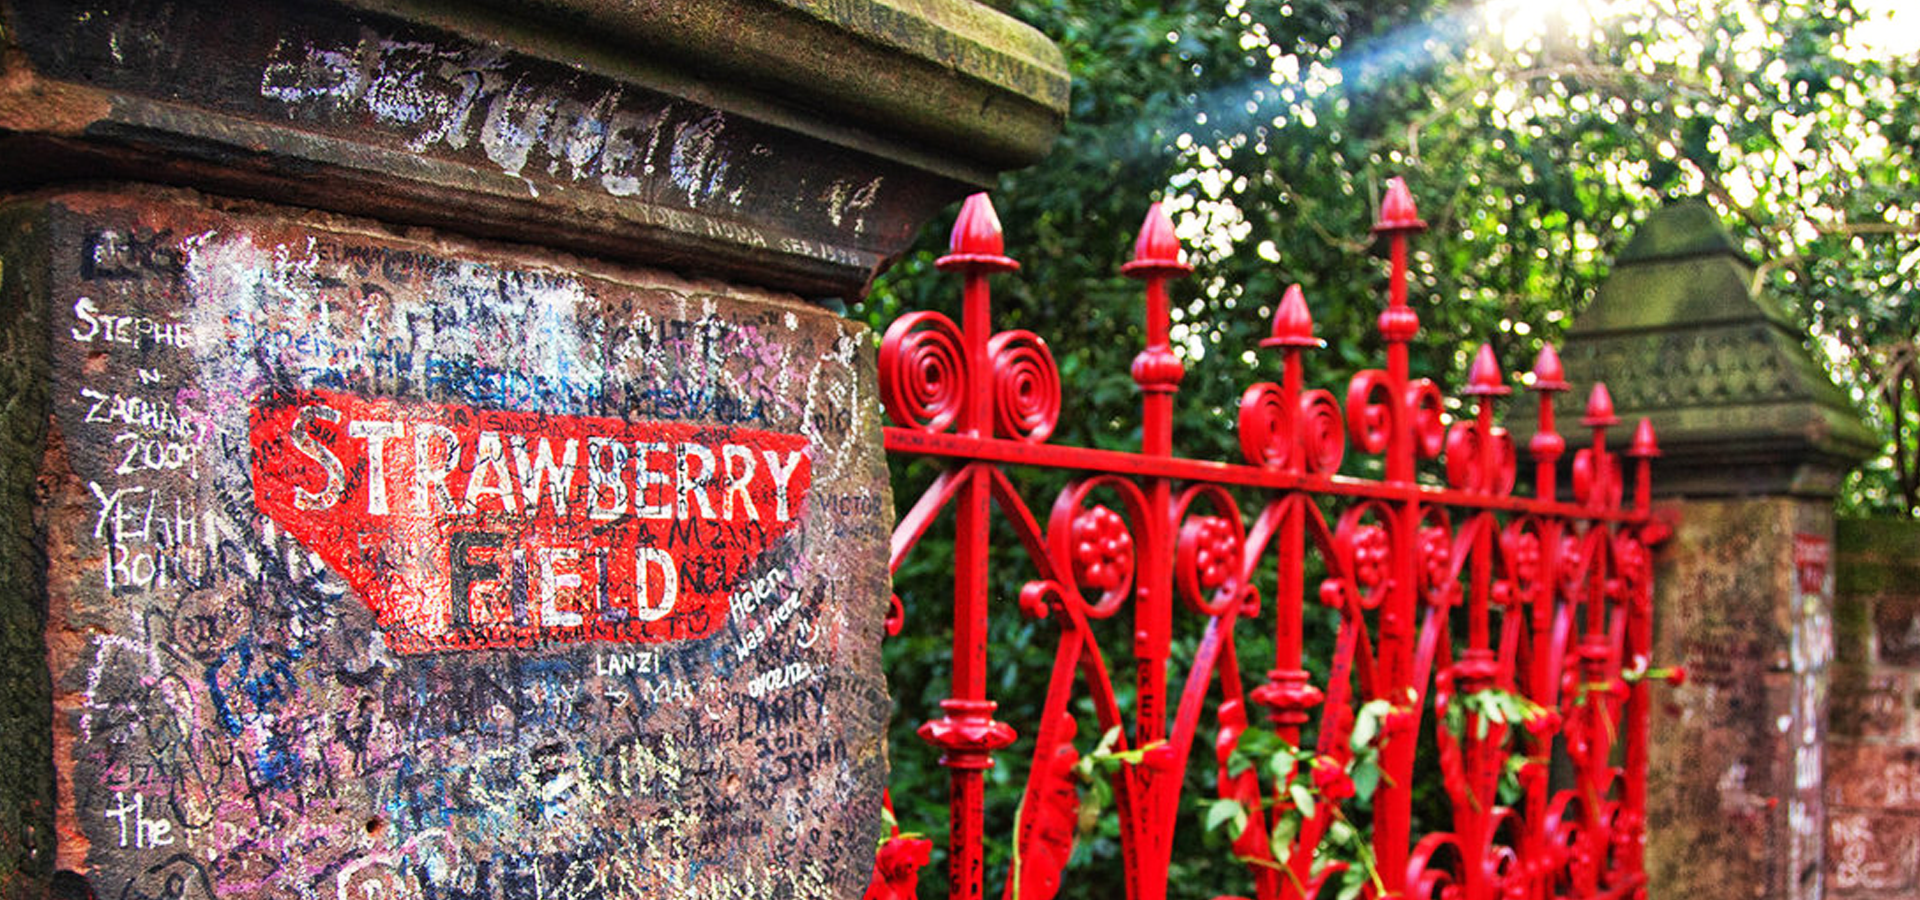 Strawberry Field near Liverpool, England